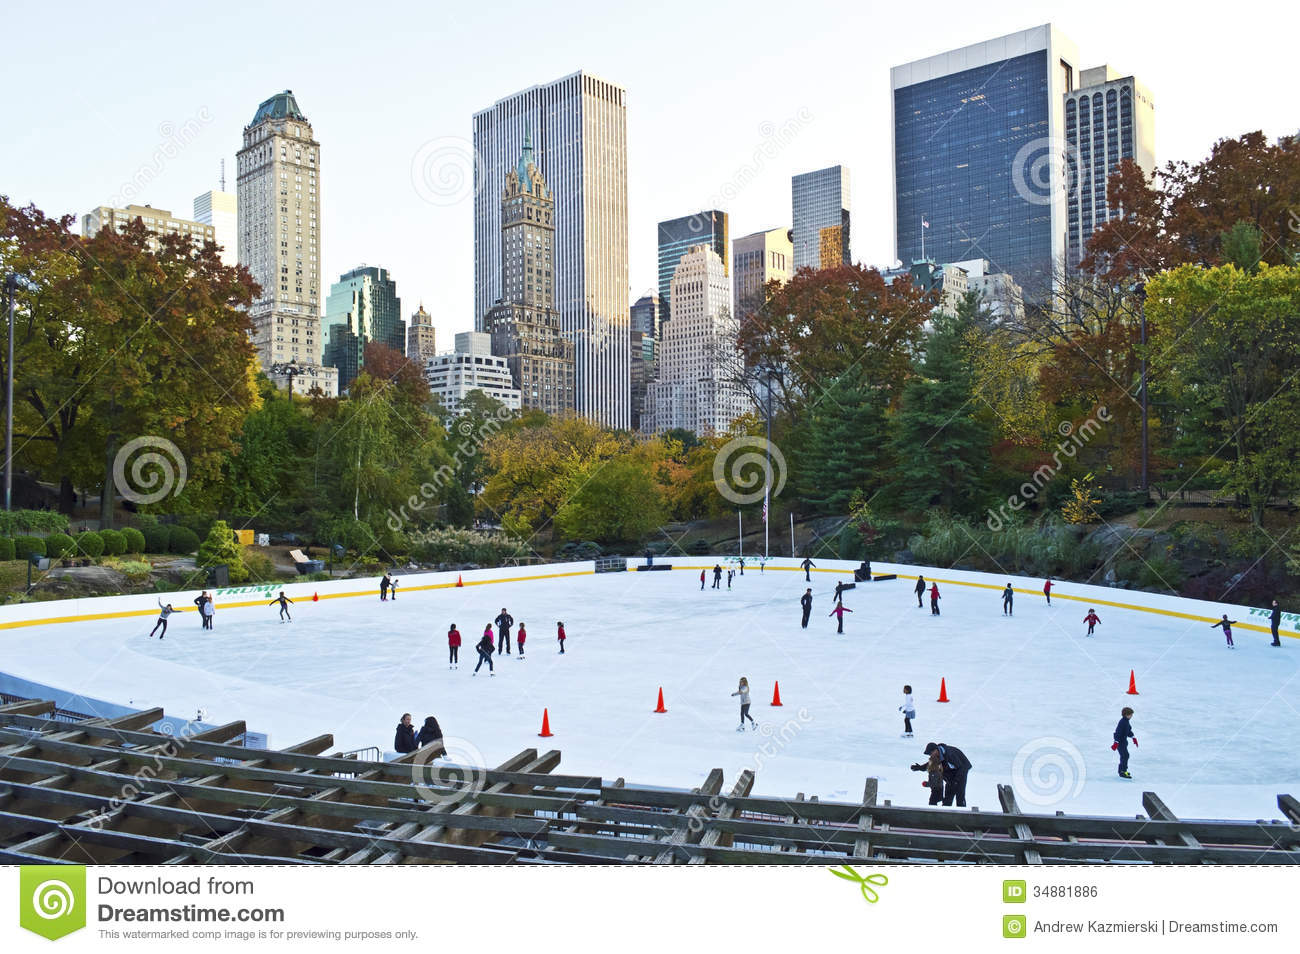 The Wollman Rink in Central Park with skating in late October.